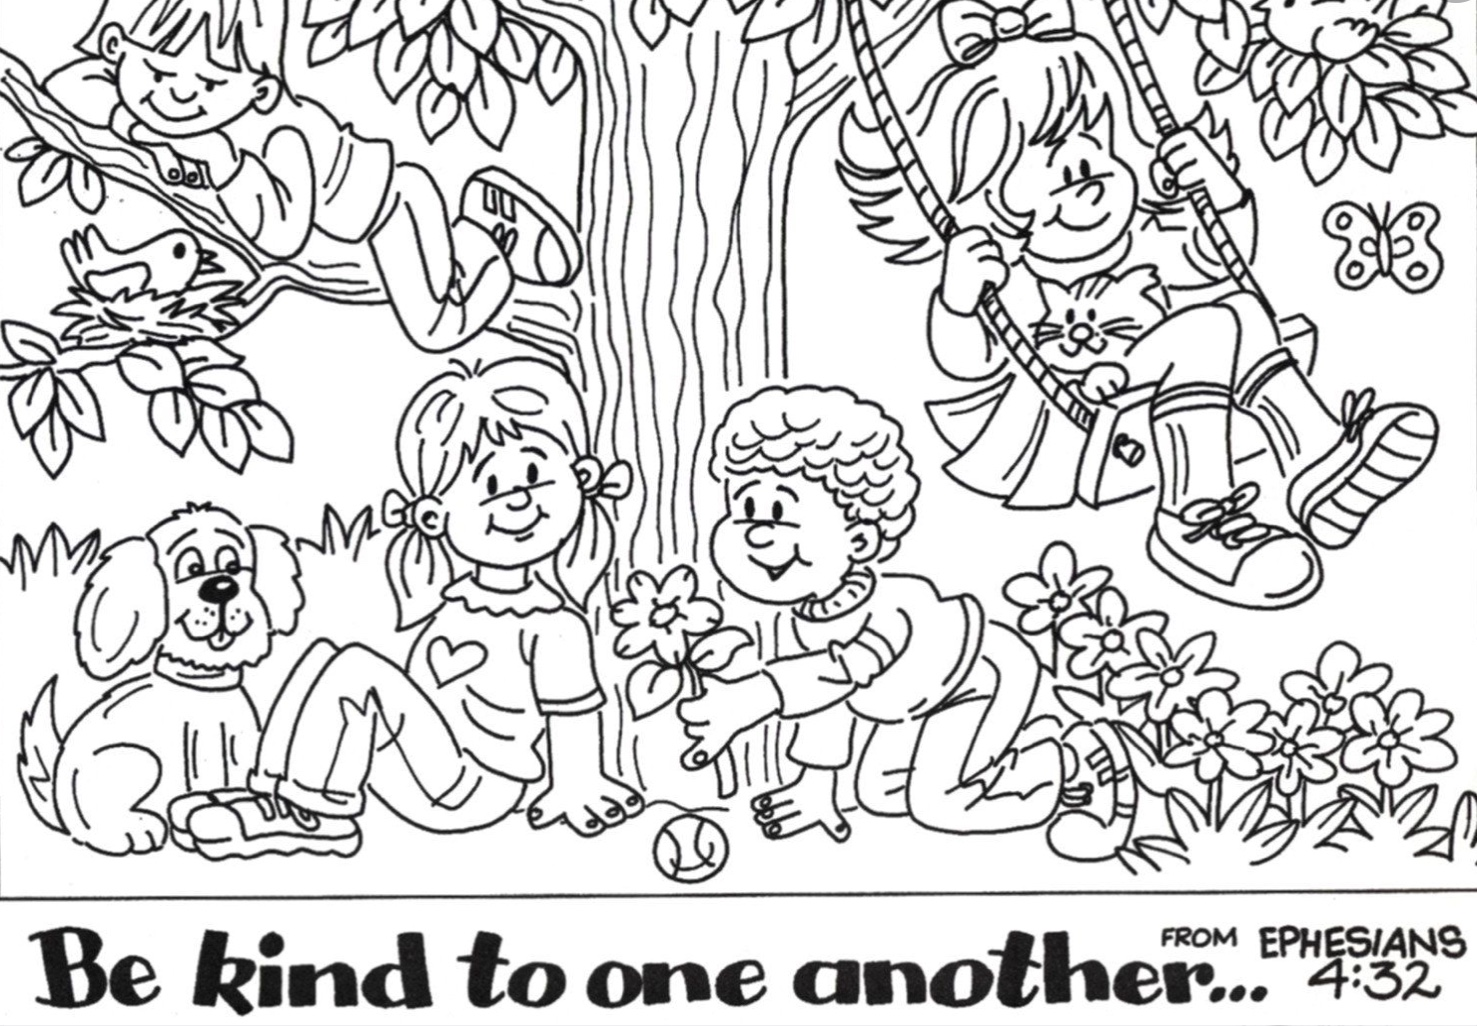 coloring pages : Middle School Coloring Pages Best Of Coloring ... | 1026x1477